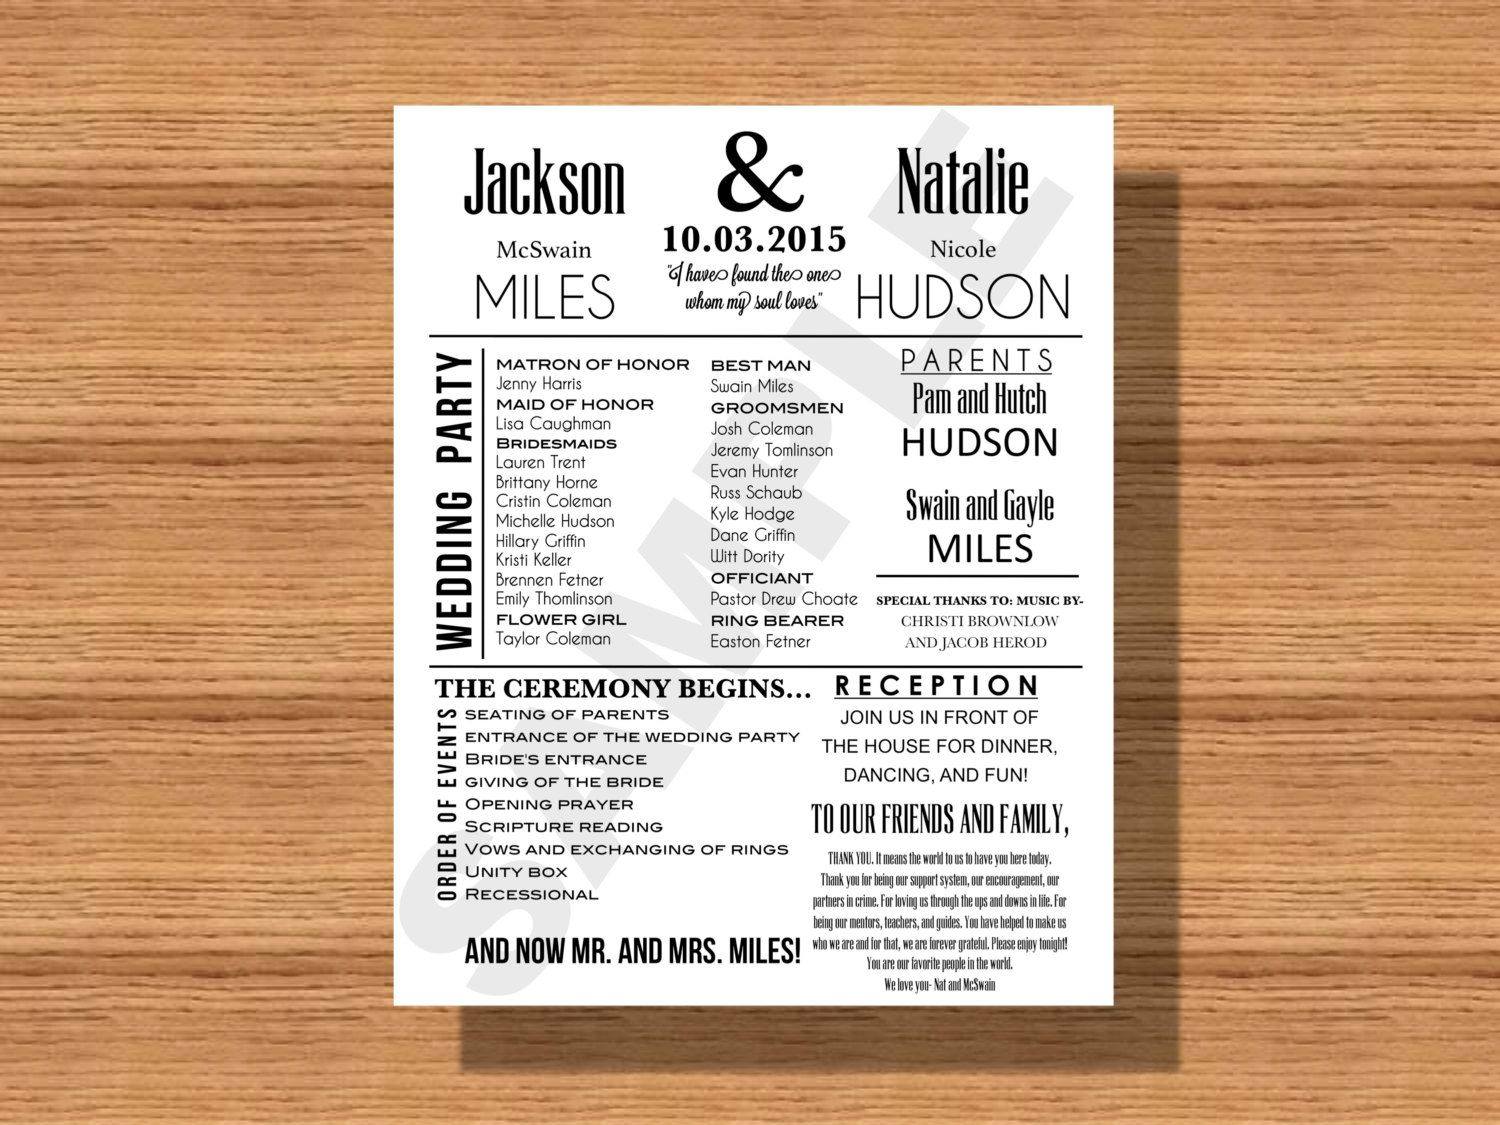 Modern Wedding Program With Thank You Note Bridal Party Introductions Order Of Events Reception Information And More